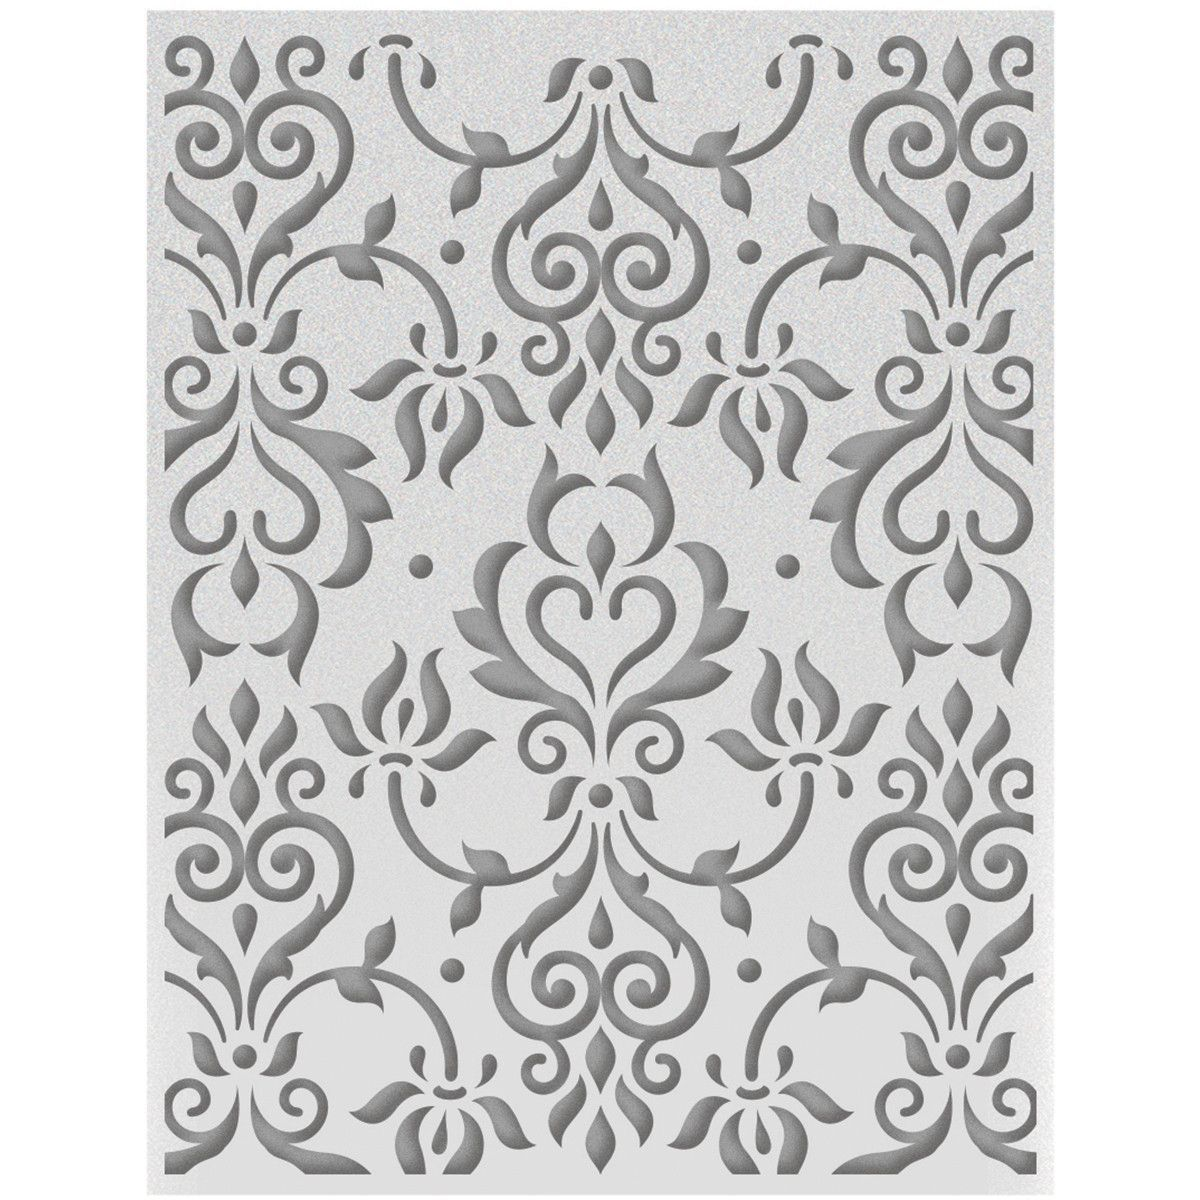 Ultimate Crafts Ooh La La A2 Embossing Folder - Zephyr Flourish